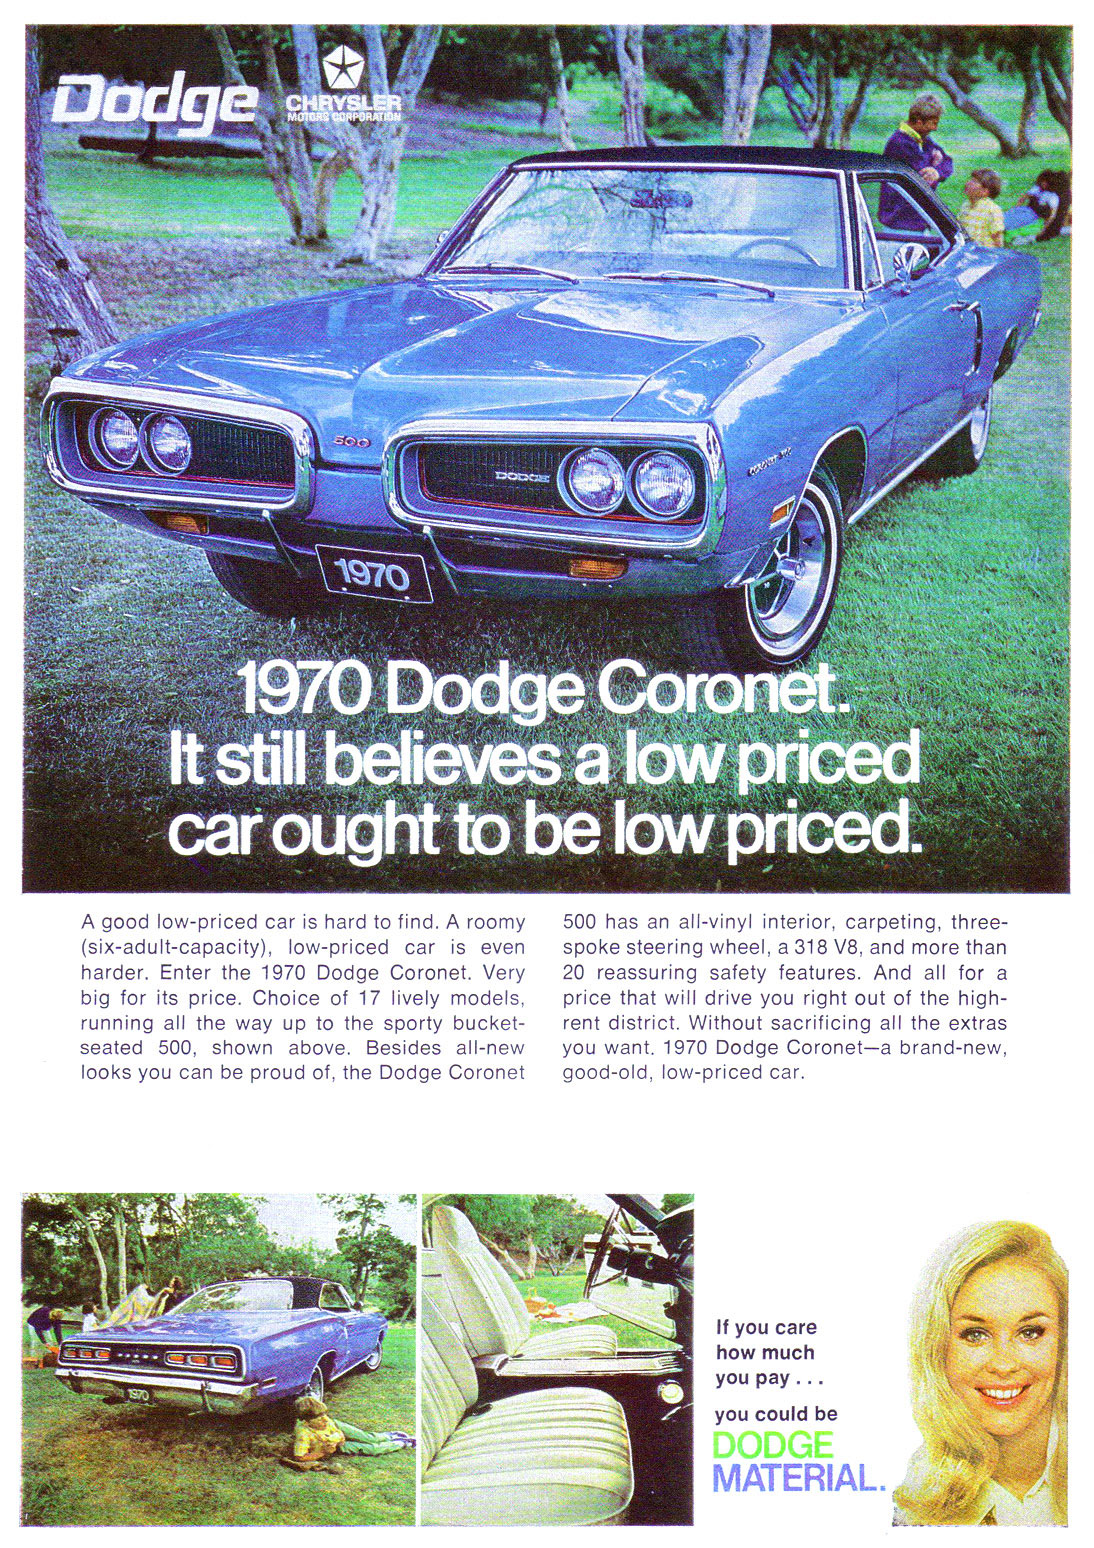 A good low-priced car is hard to find. A roomy (six-adult-capacity), low-priced car is even harder. Enter the 1970 Dodge Coronet. Very big for its price. Choice of 17 lively models, running all the way up to the sporty bucket-seated 500, shown above. Besides all-new looks you can be proud of, the Dodge Coronet  500 has an all-vinyl interior, carpeting, three-spoke steering wheel, a 318 V8, and more than 20 reassuring safety features. And all for a price that will drive you right out of the high-rent district. Without sacrificing all the extras you want. 1970 Dodge Coronet—a brand-new, good-old, low-priced car.   If you care how much you pay ... you could be  MATERIAL,